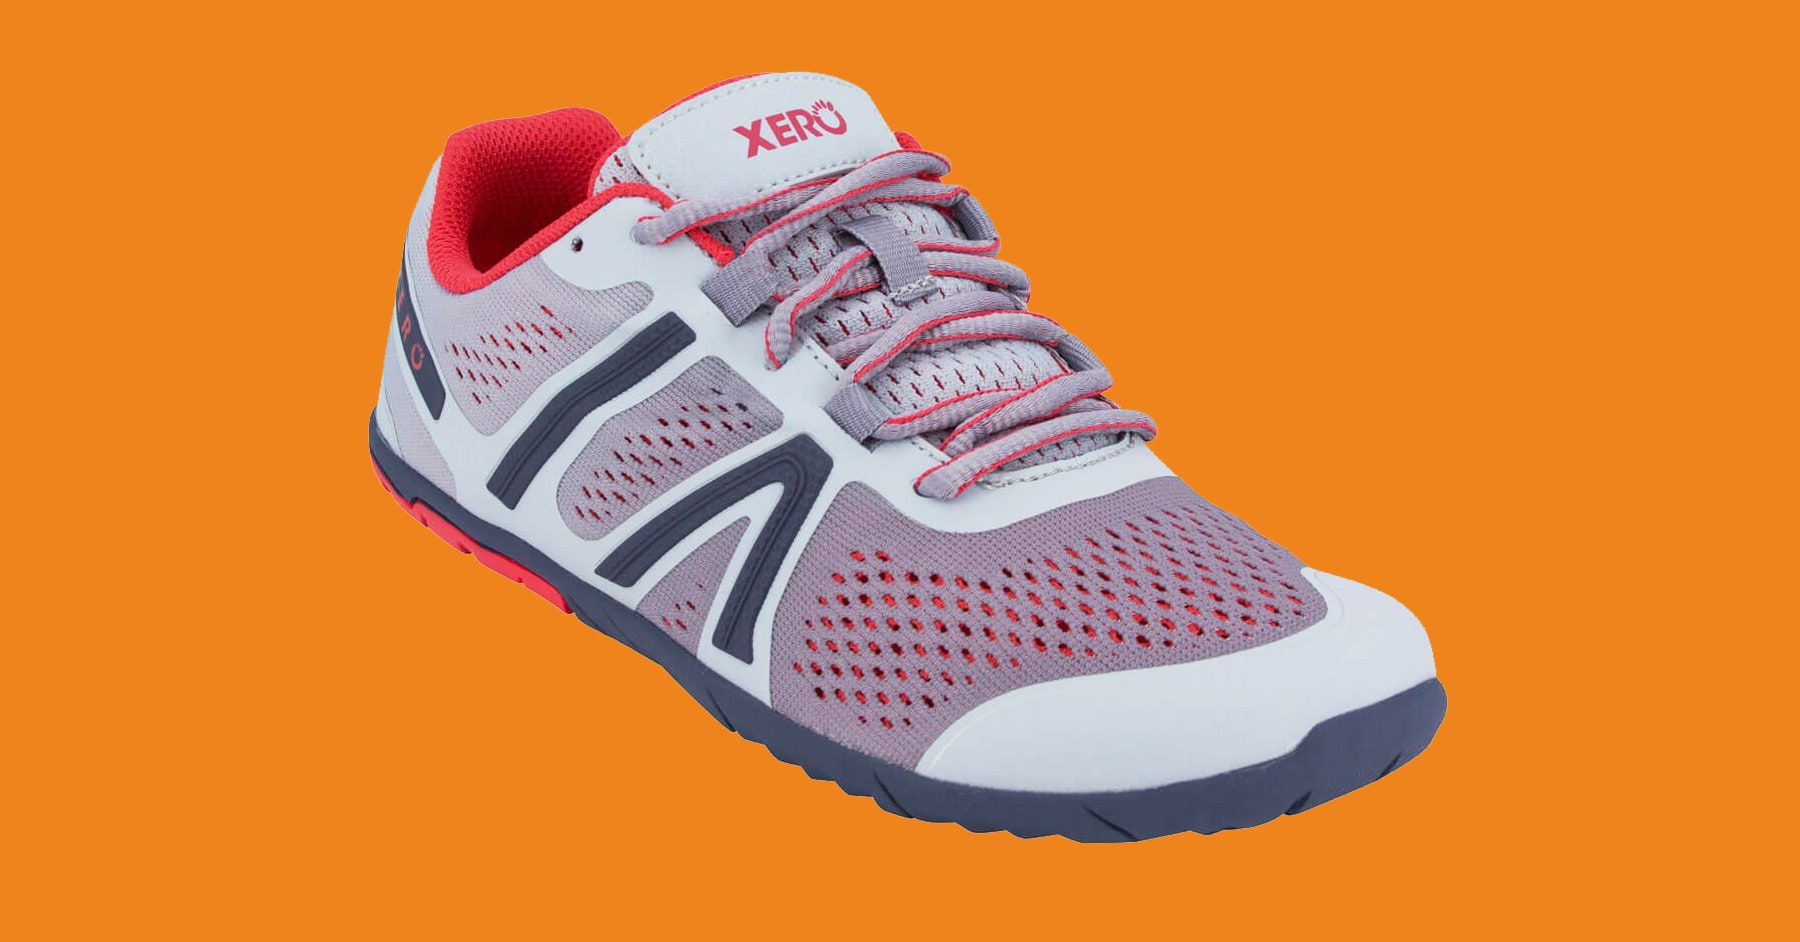 The 8 Best Barefoot Shoes (2021): For Running or Walking